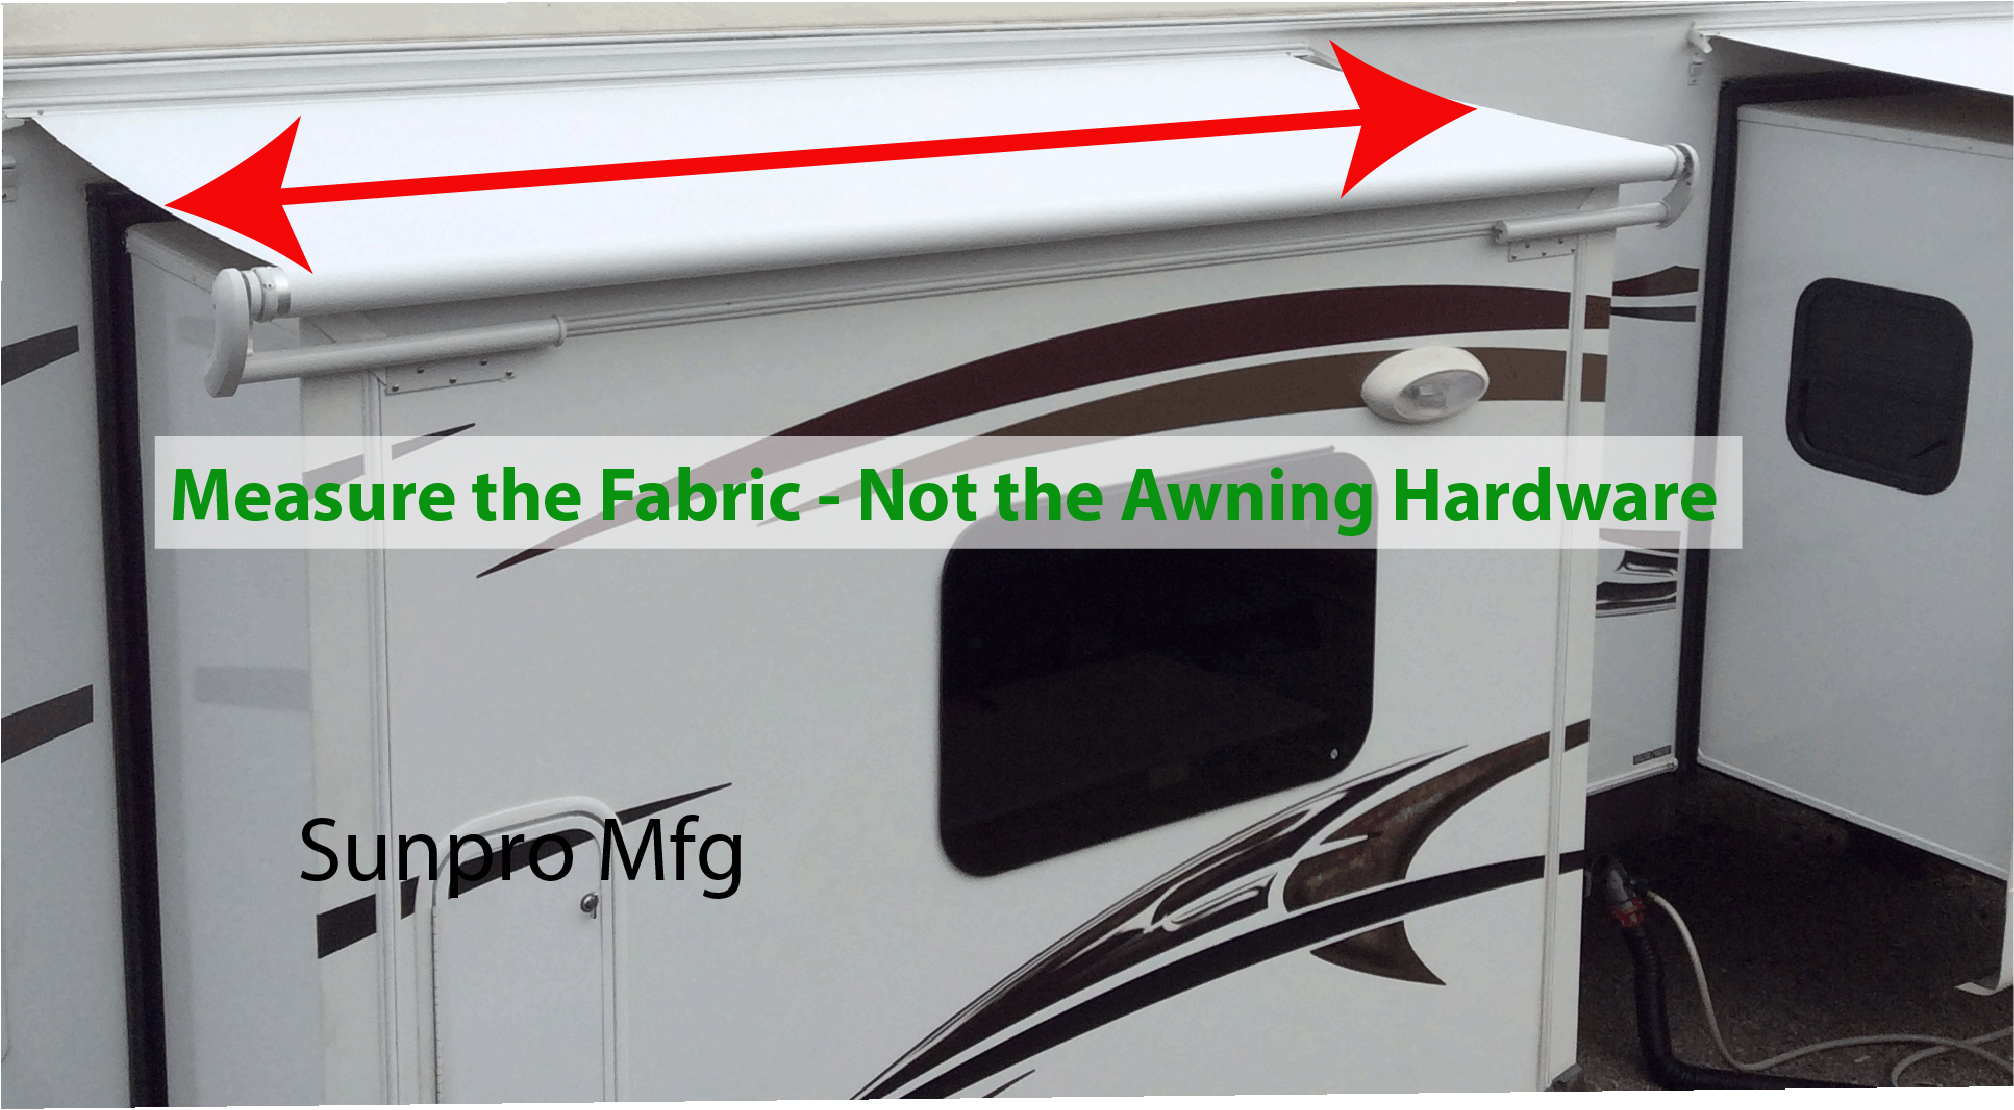 Slide Out Awning